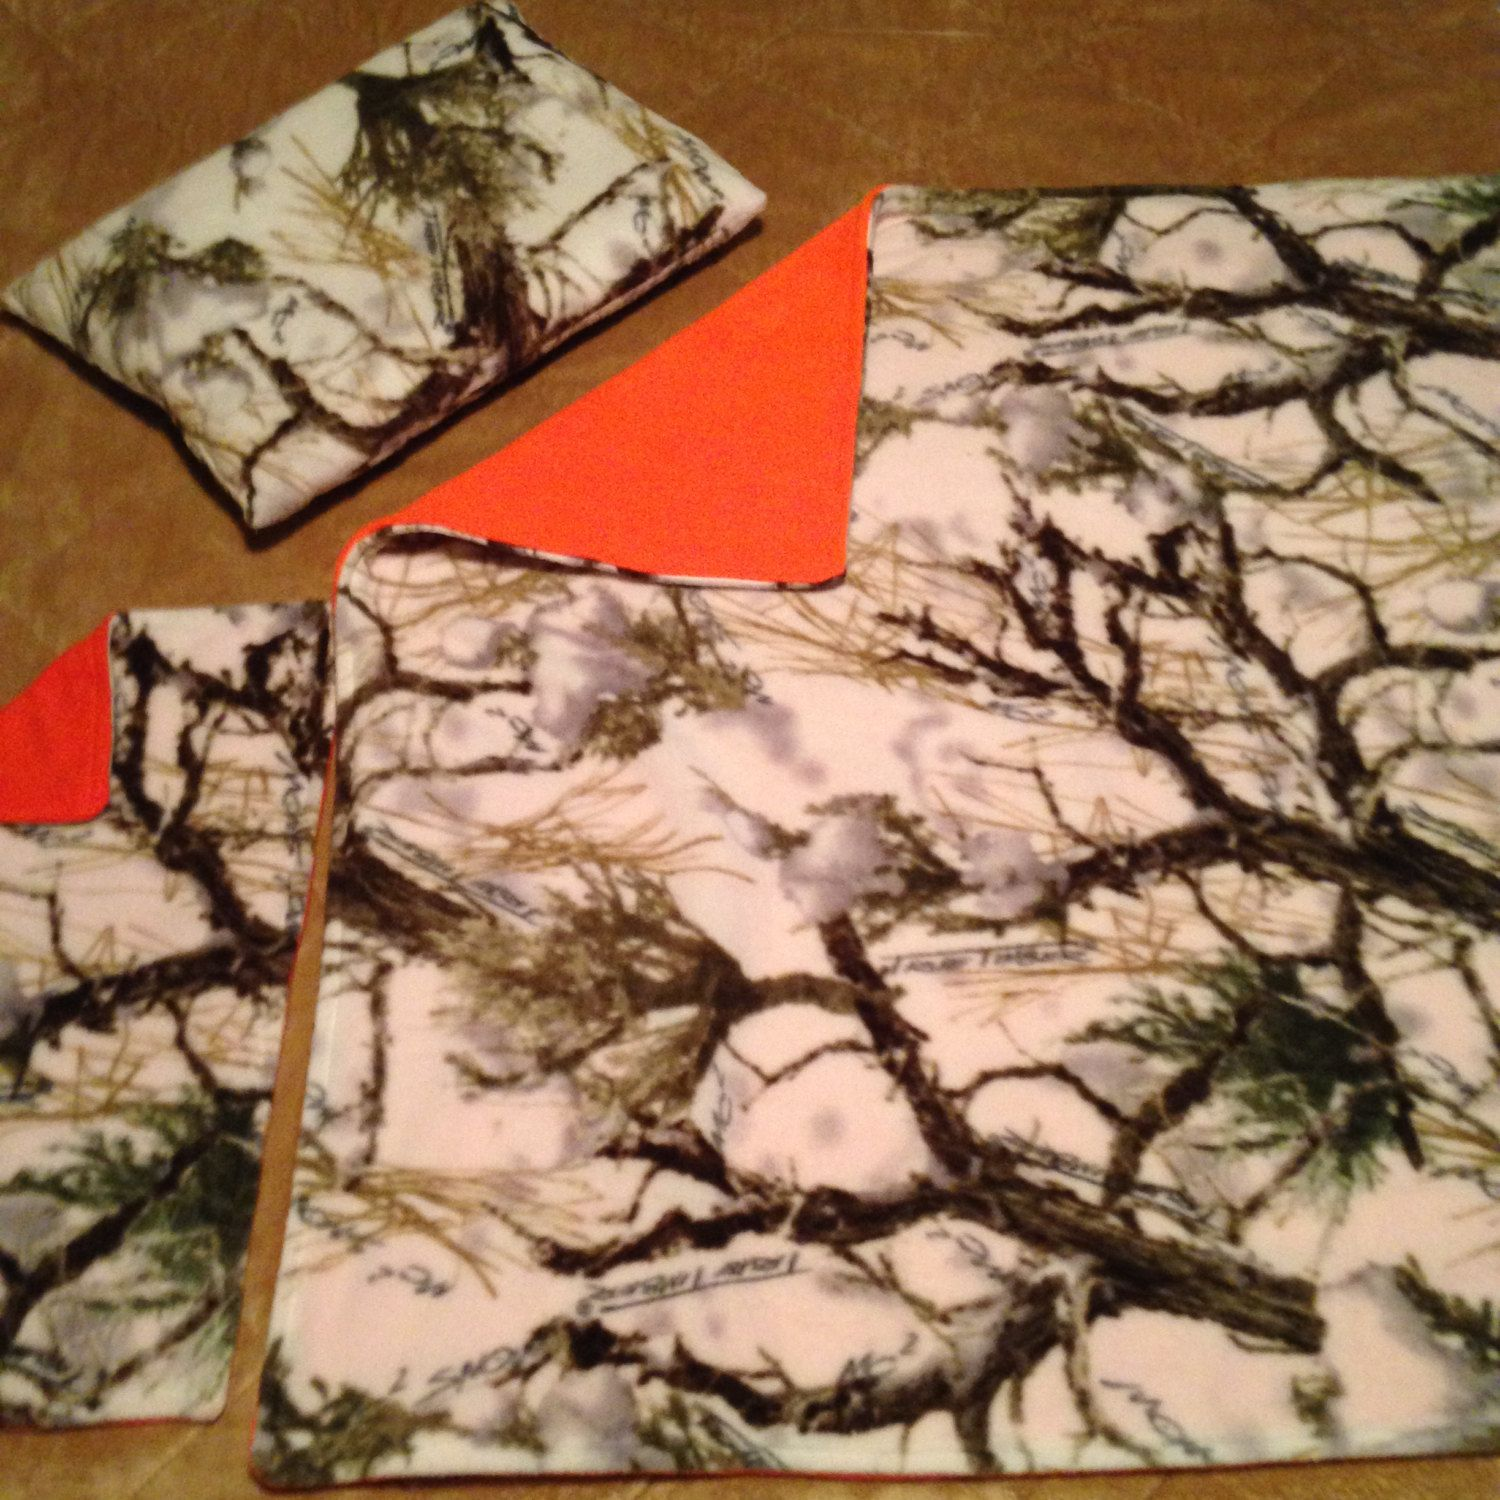 Baby Winter Camo Fleece Blanket Burp Rag and Pillow set by CountrySnuggles on Etsy